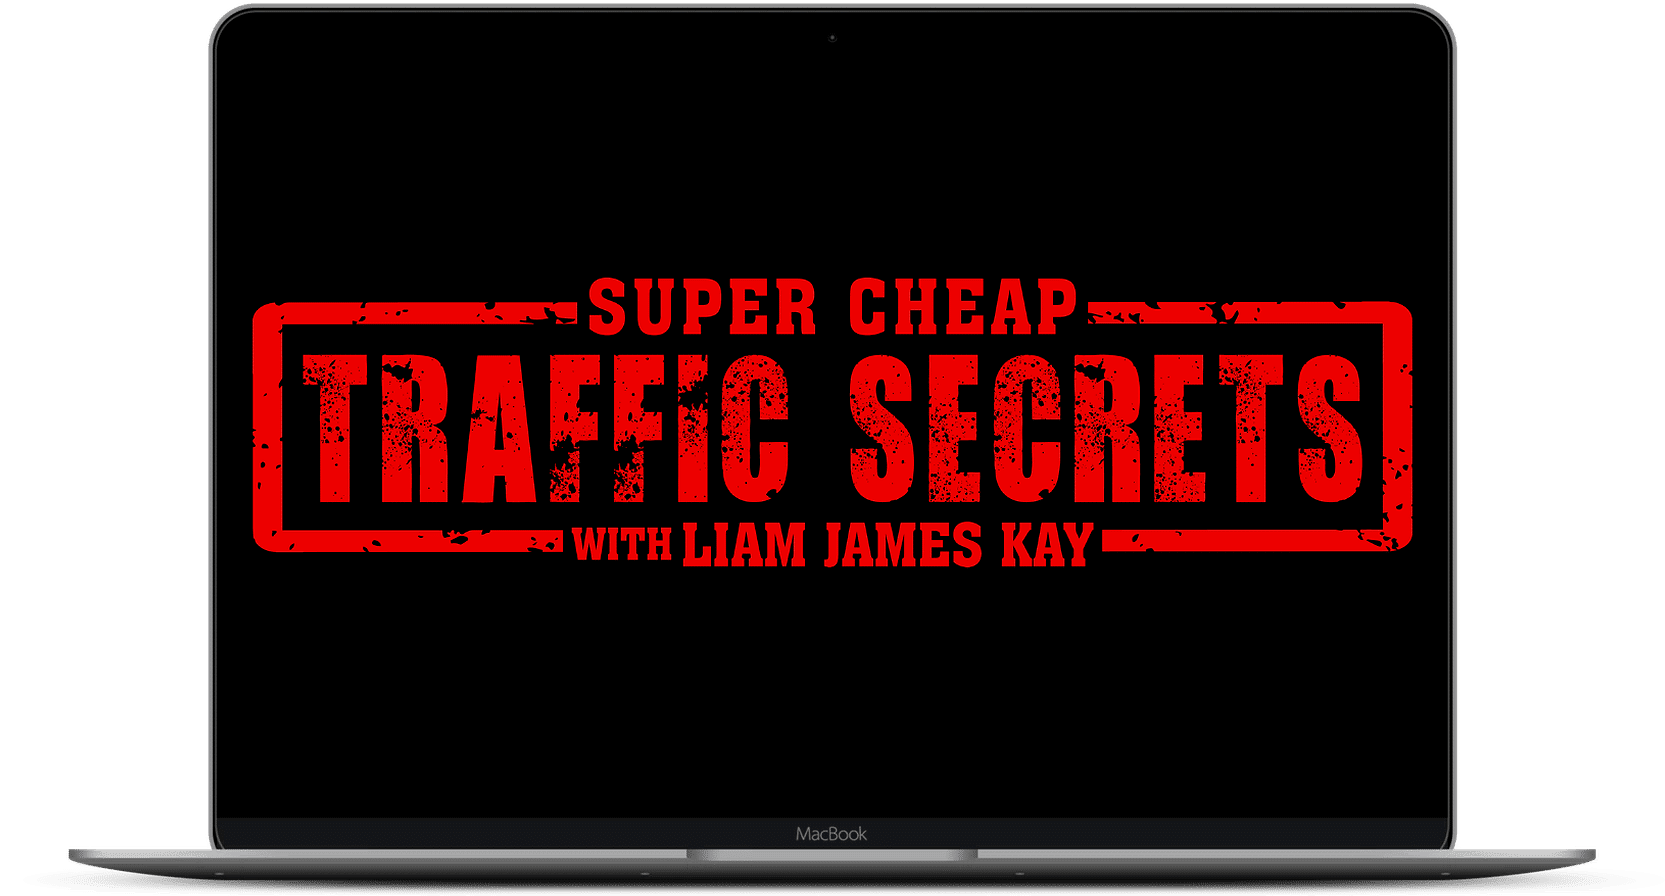 Super Cheap Traffic Secrets with Liam James Kay Free Download